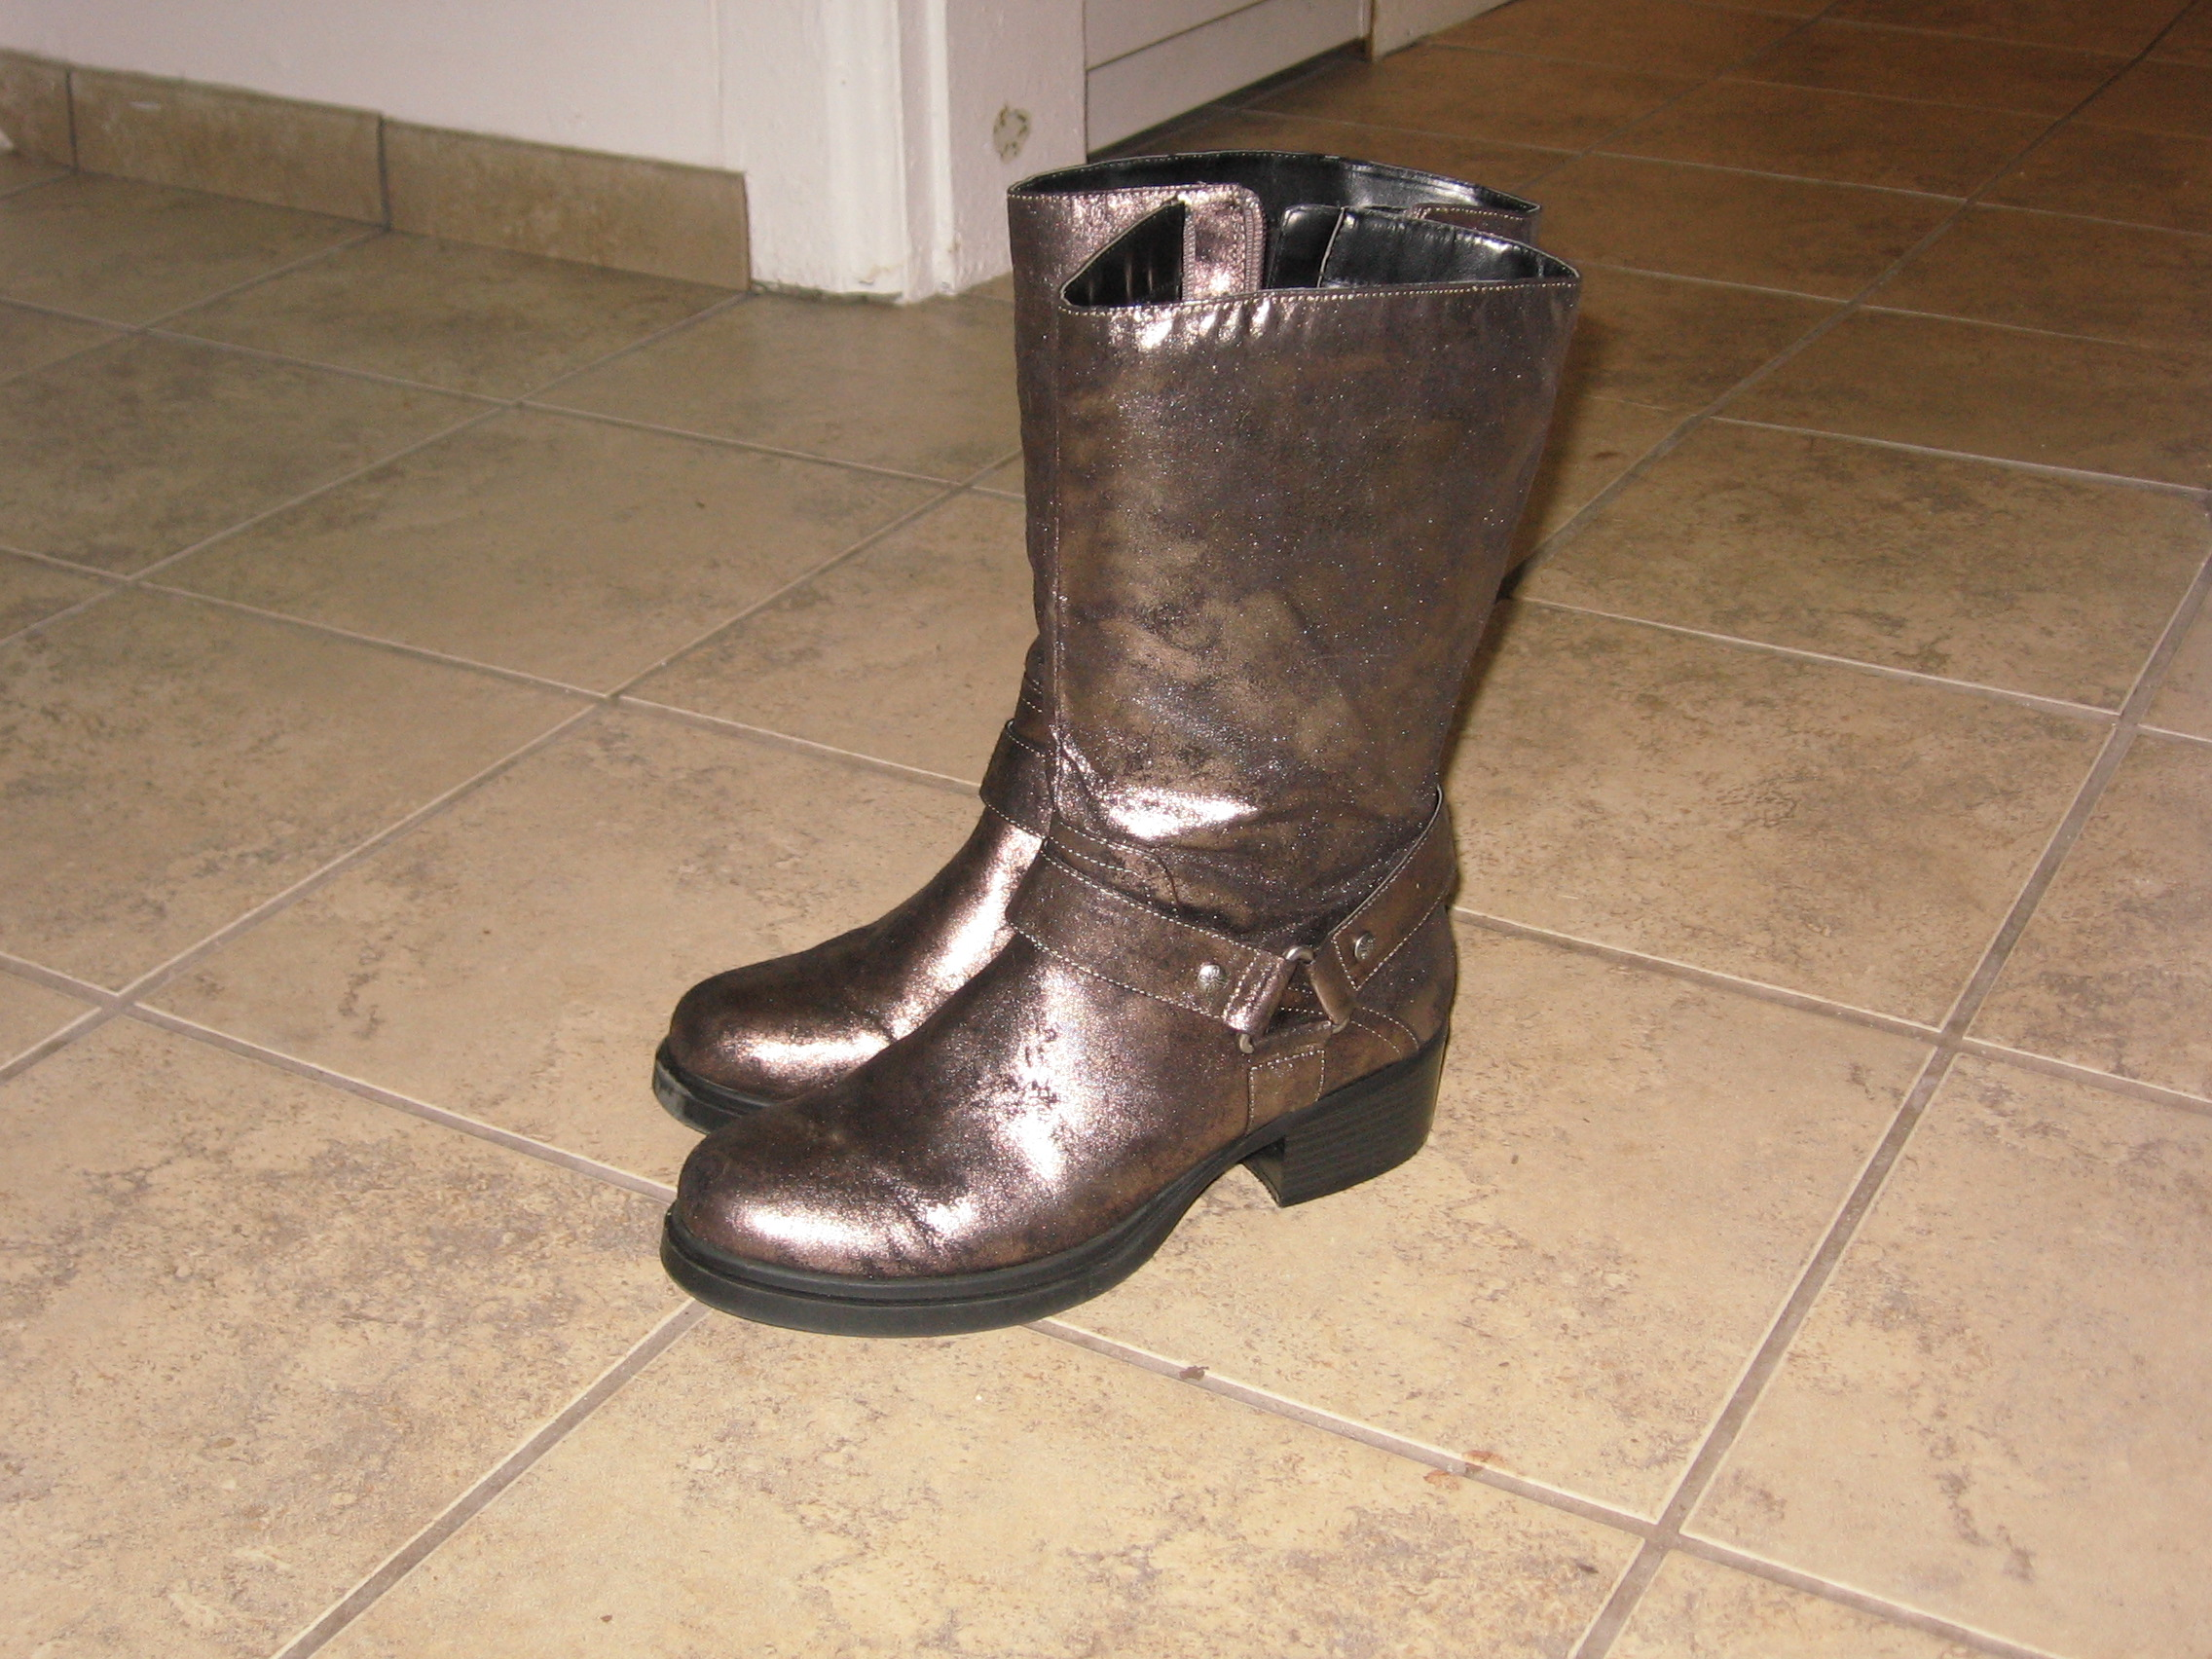 Adding Traction to Boots